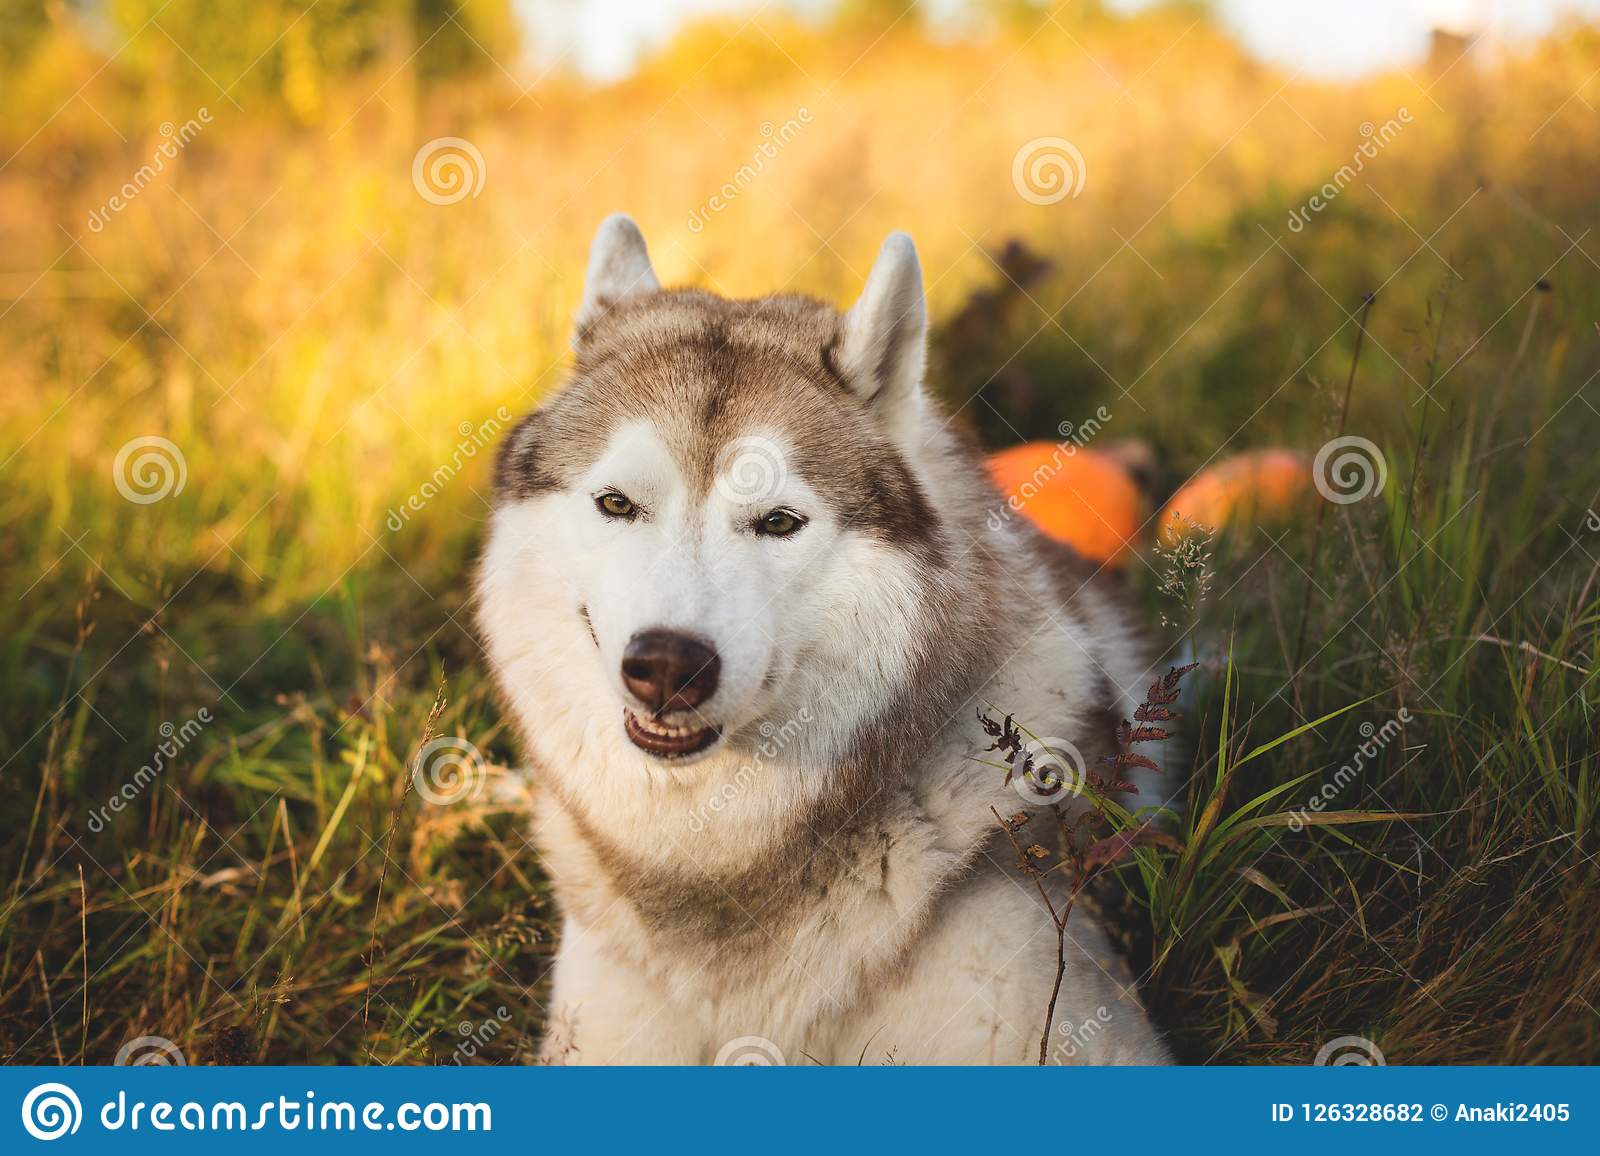 Close-up Portrait of funny dog breed siberian husky with happy smile lying next to a pumpkin for Halloween